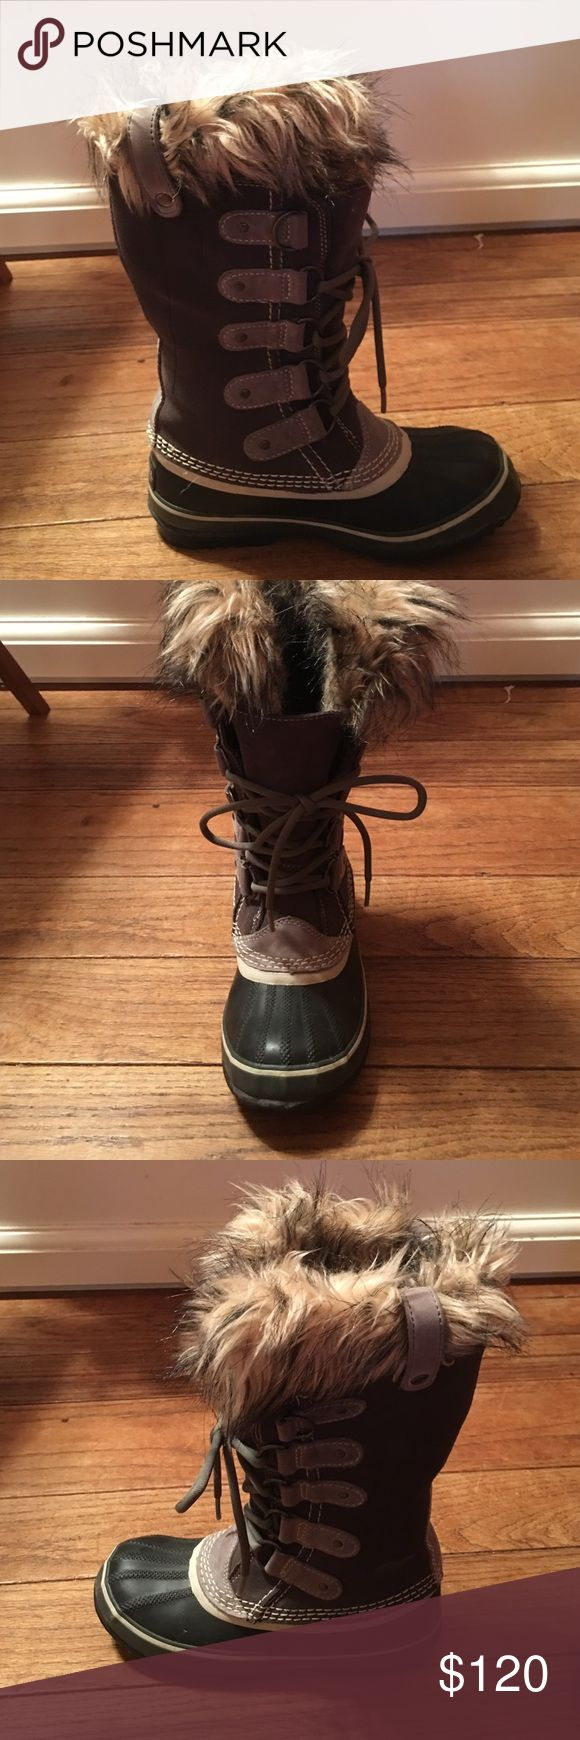 Sorel Joan of Arc boots Sorel Joan of arc boots, excellent condition, worn once, no wear on the bottoms or boot Sorel Shoes Winter & Rain Boots